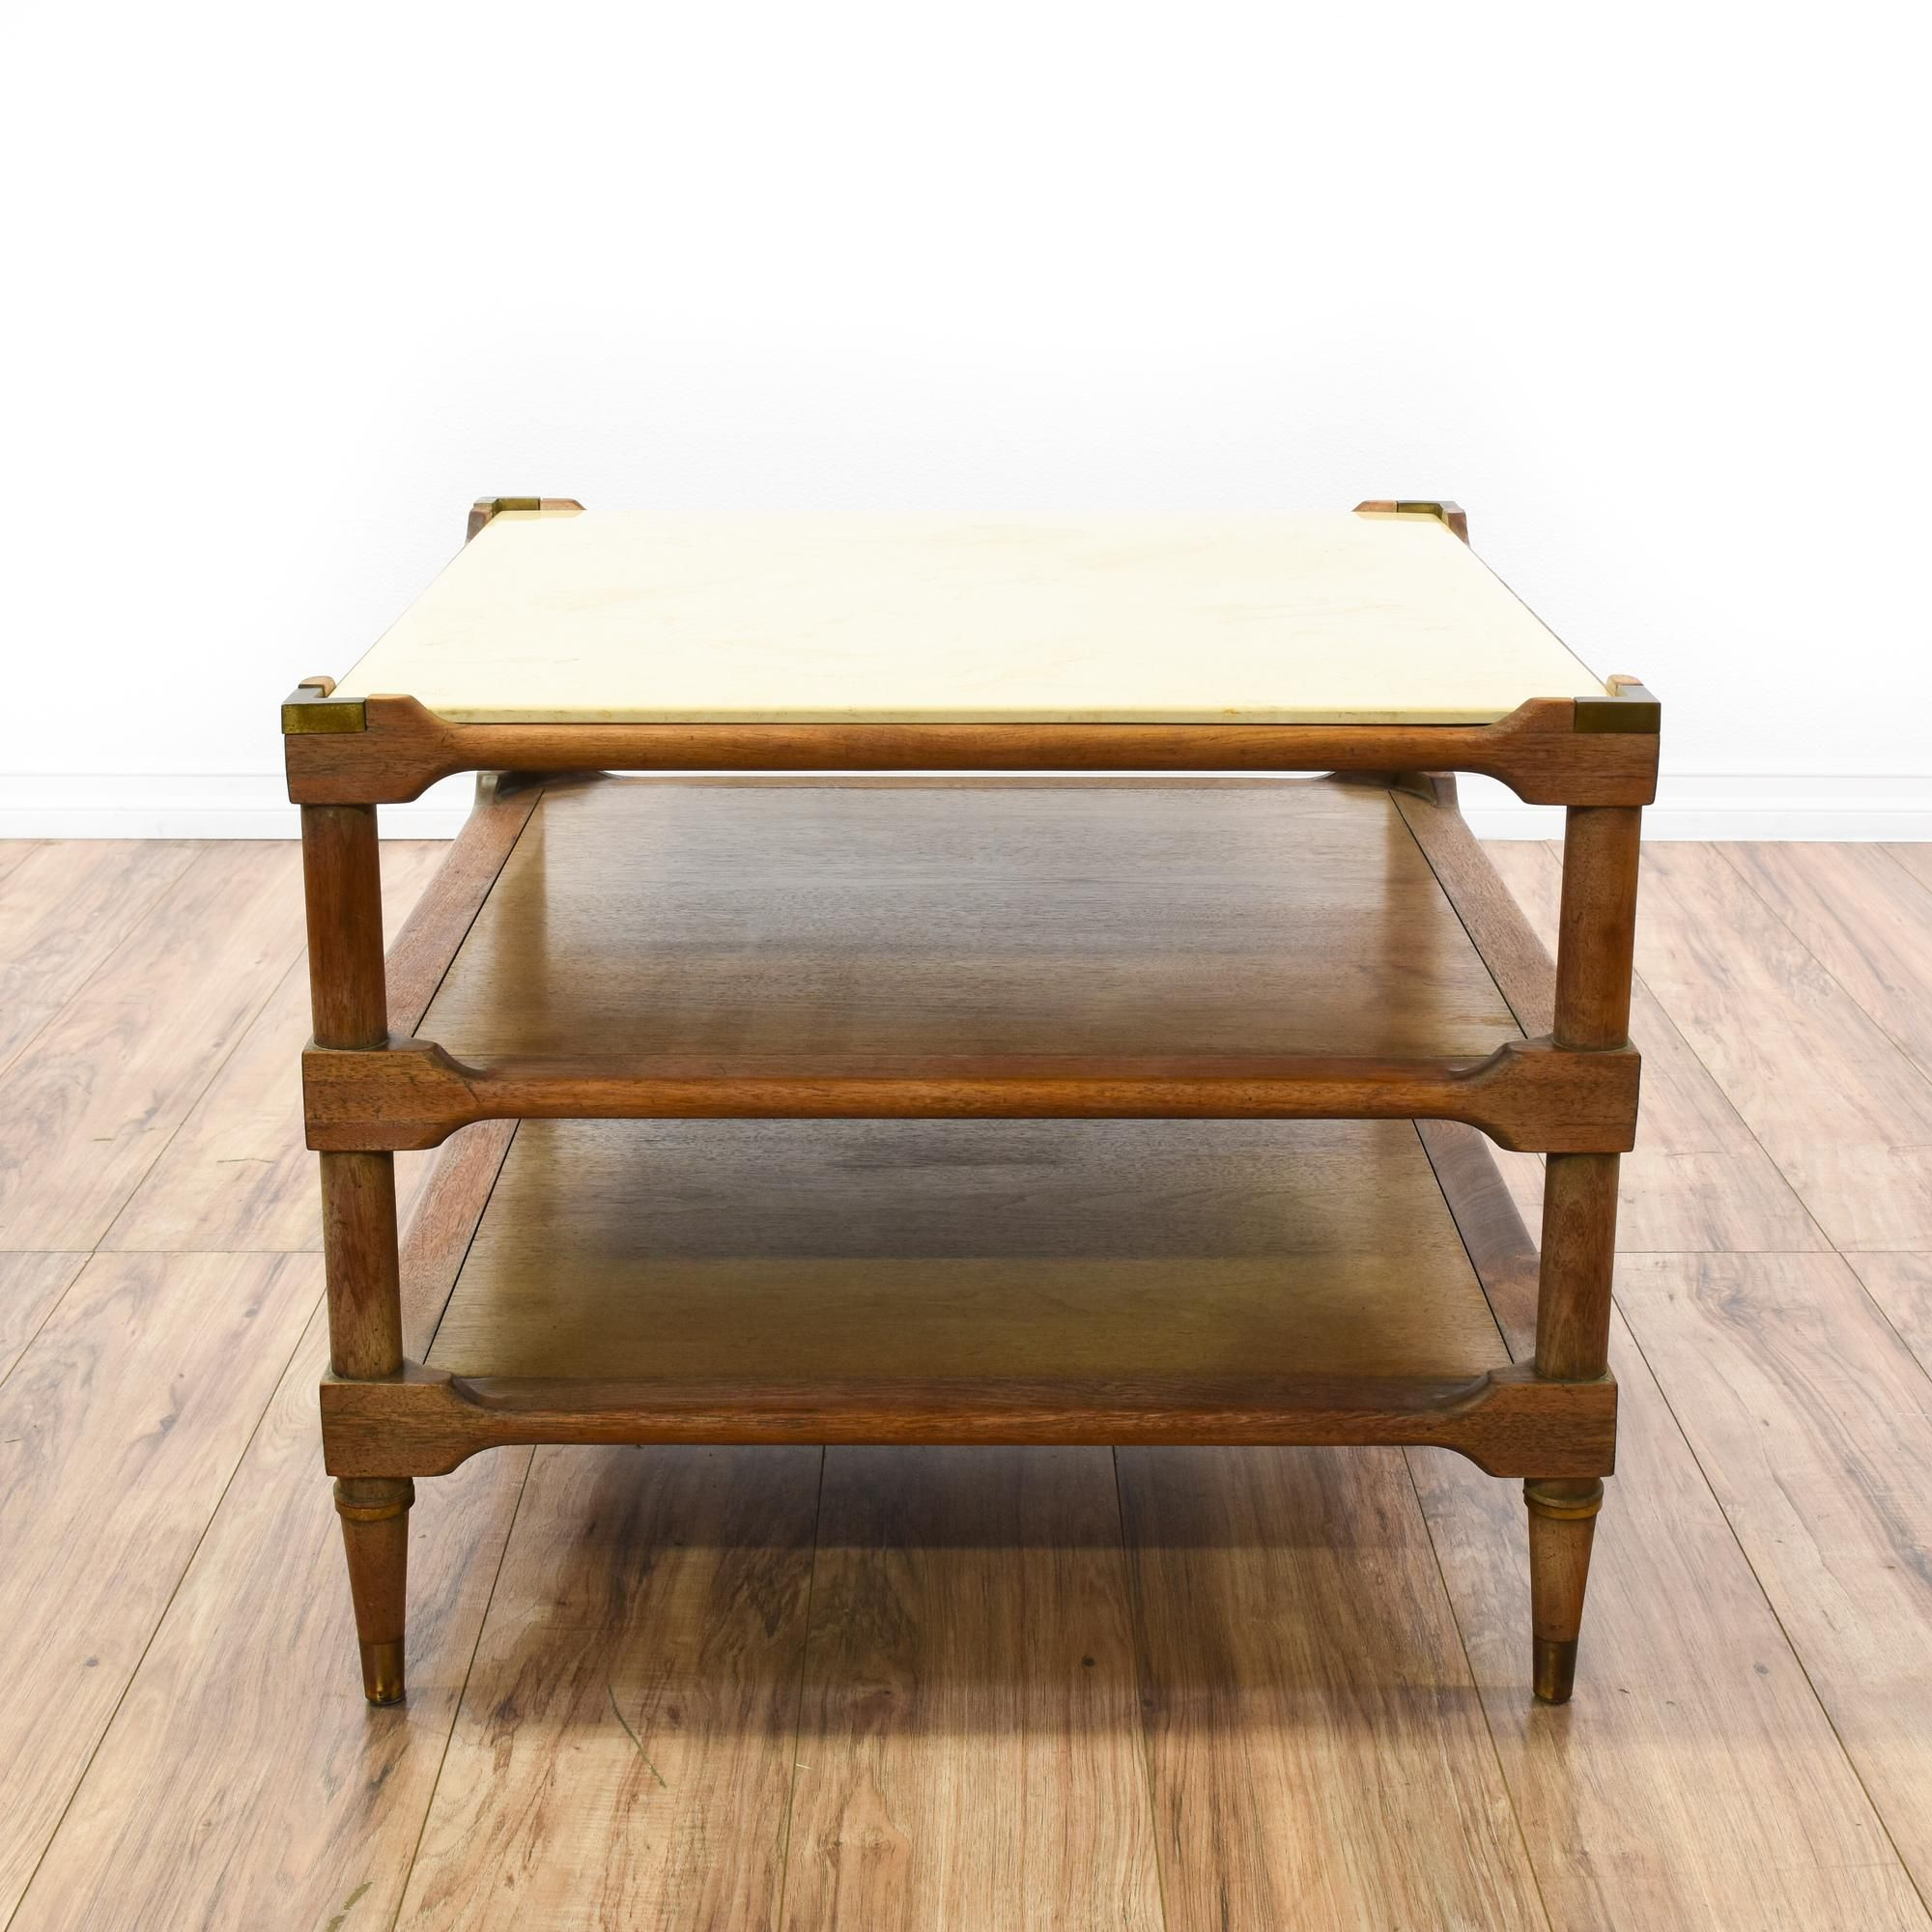 This end table is featured in a solid wood with an oak finish this